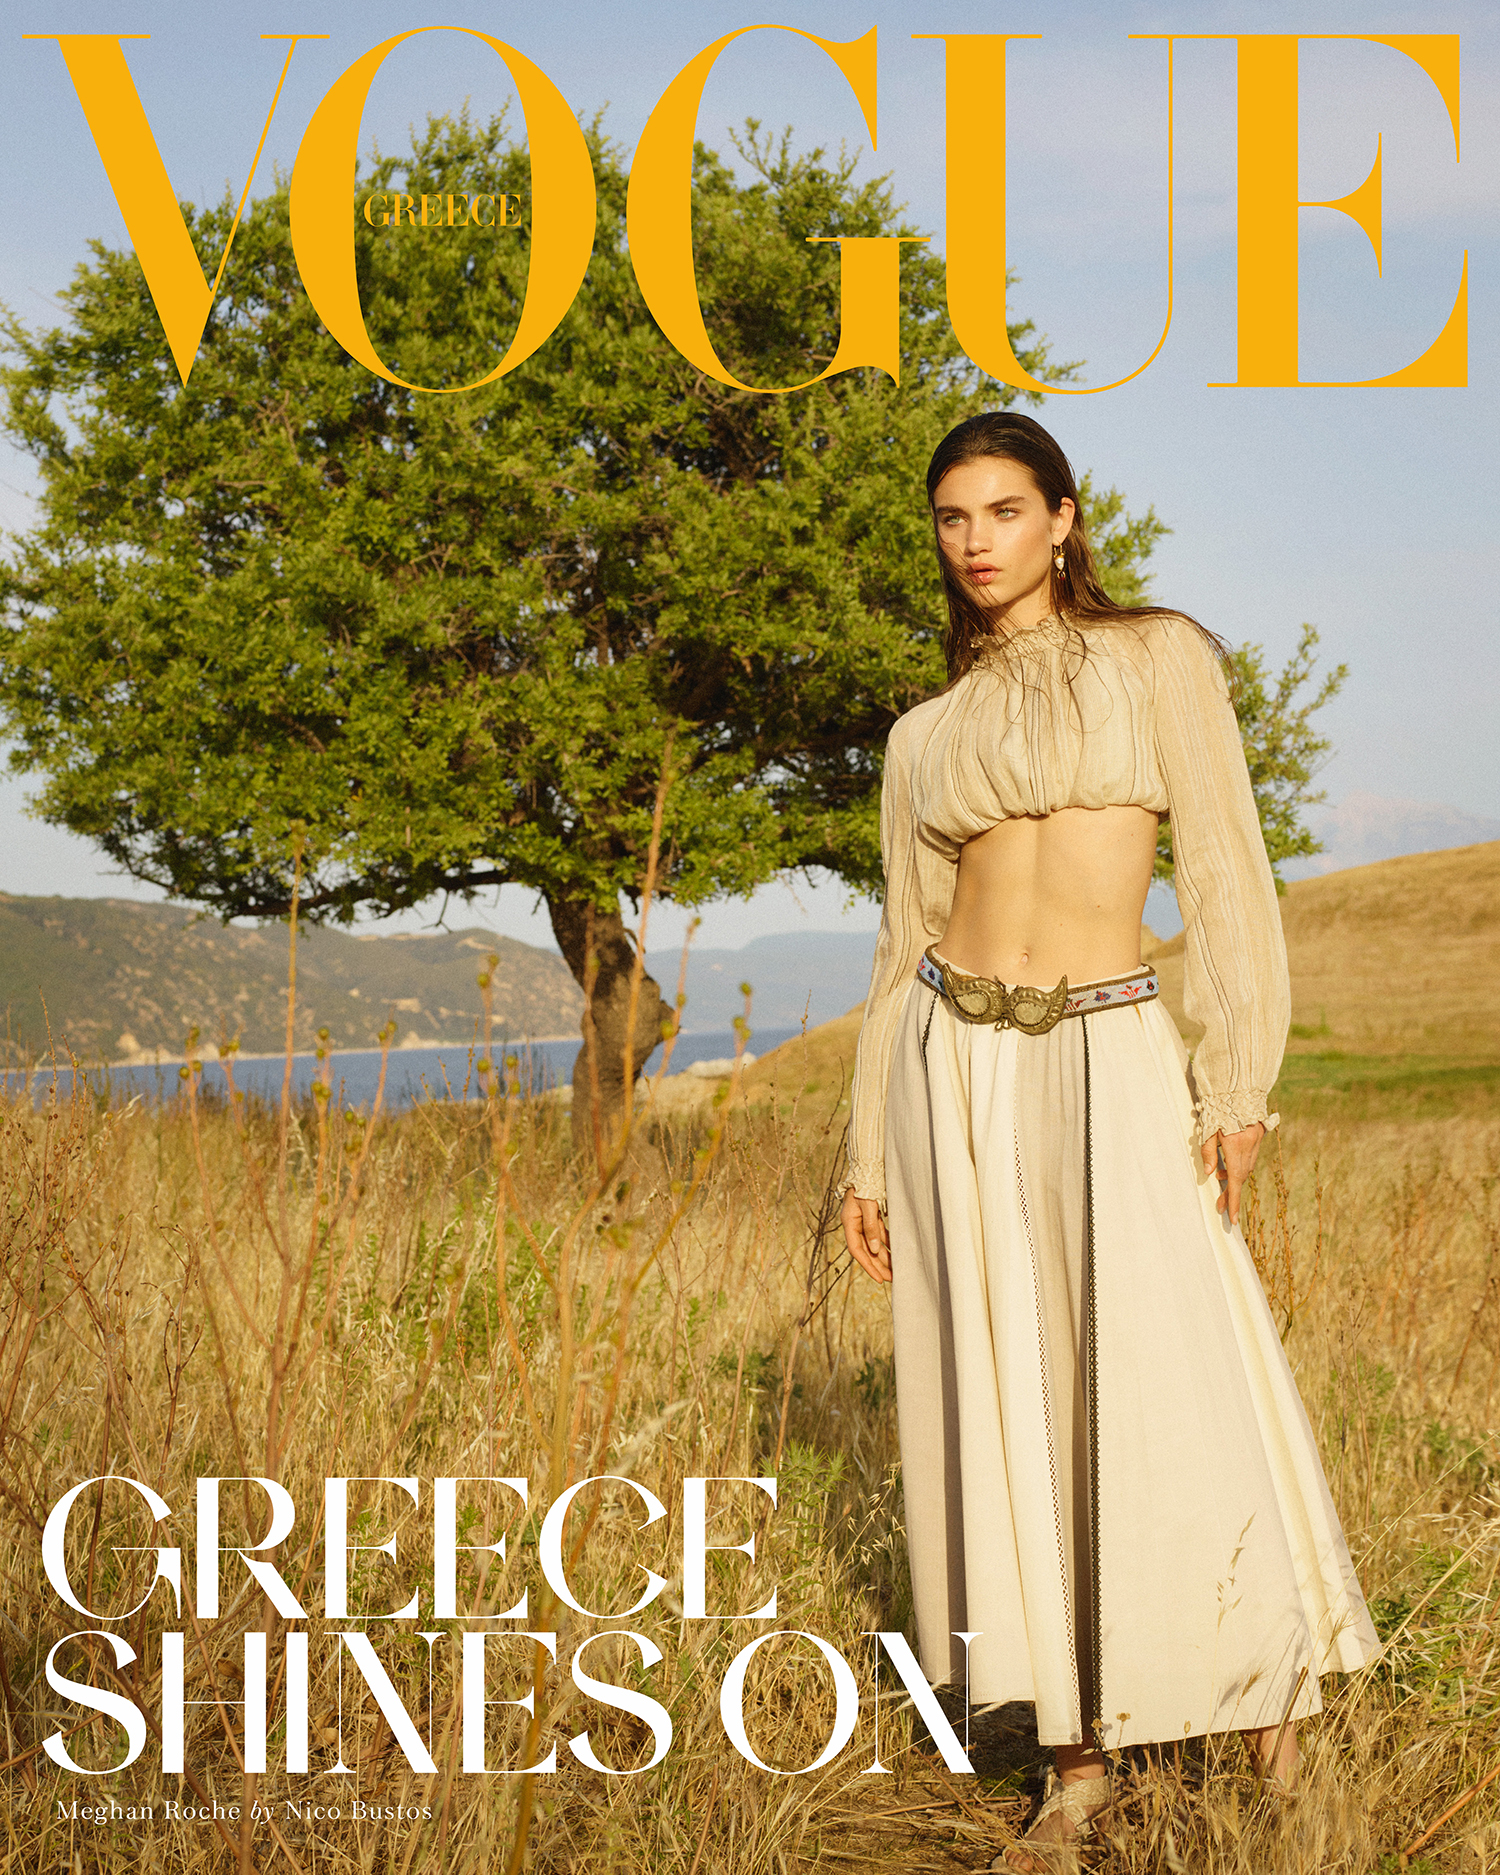 Meghan Roche covers Vogue Greece July August 2021 by Nico Bustos